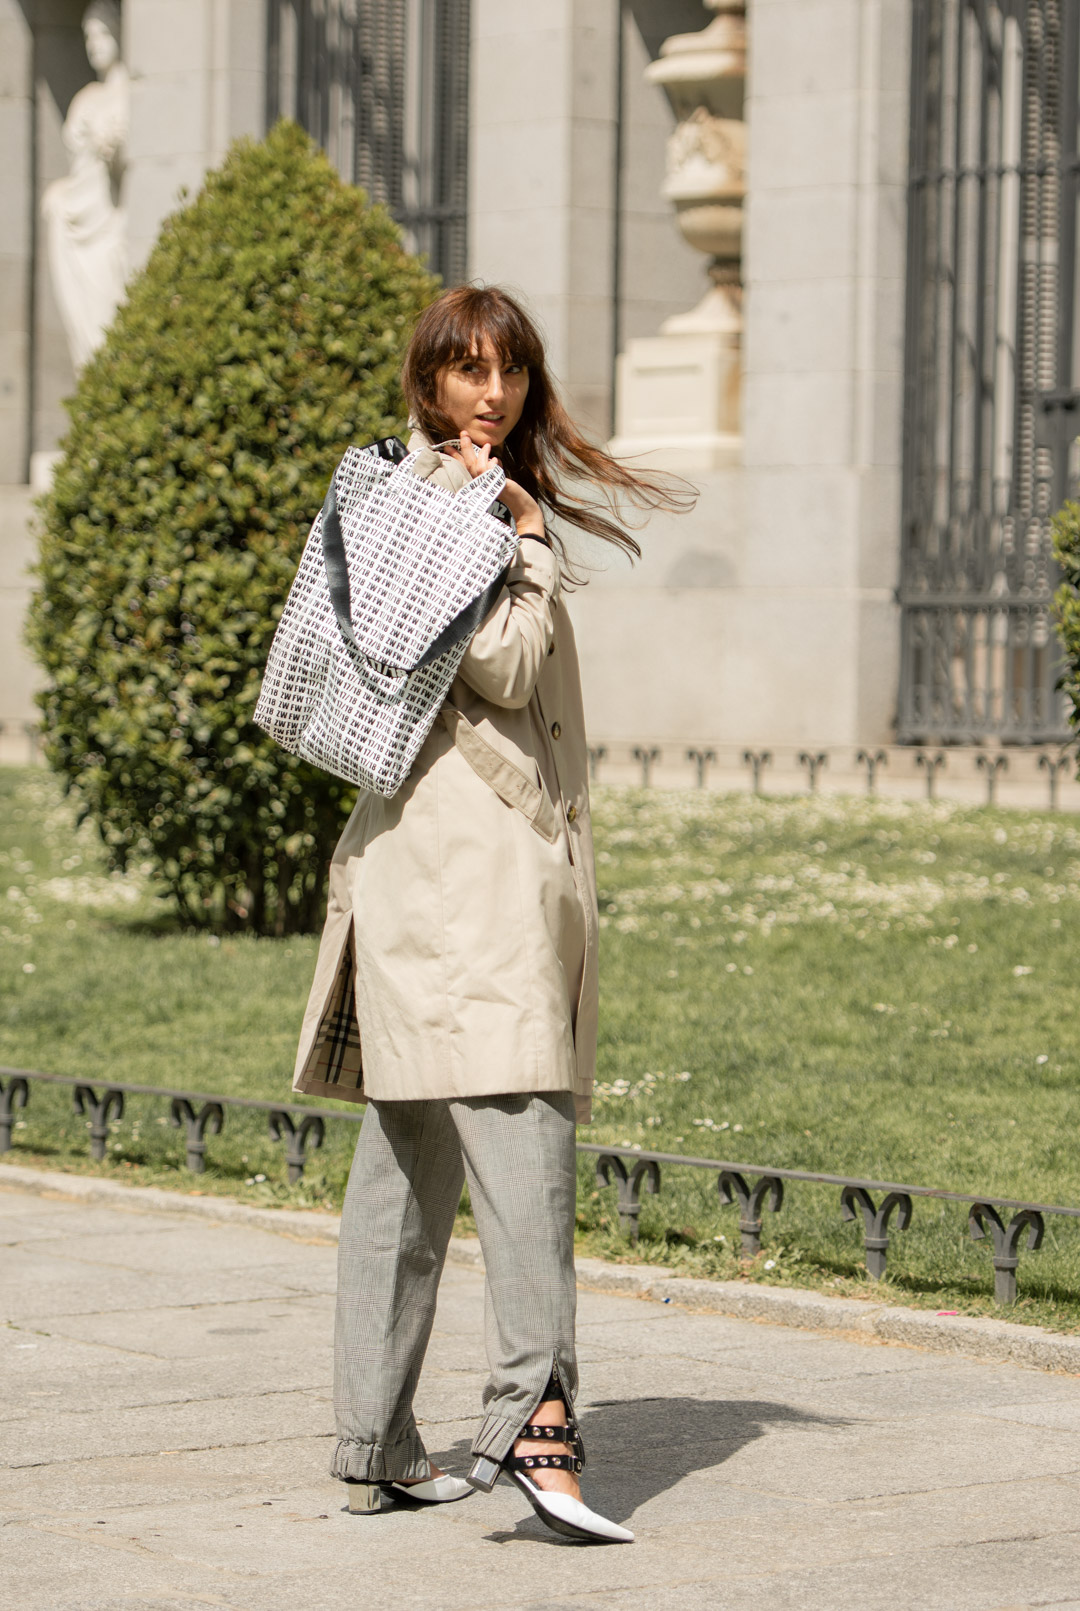 mayte-street-style-burberry-web-01